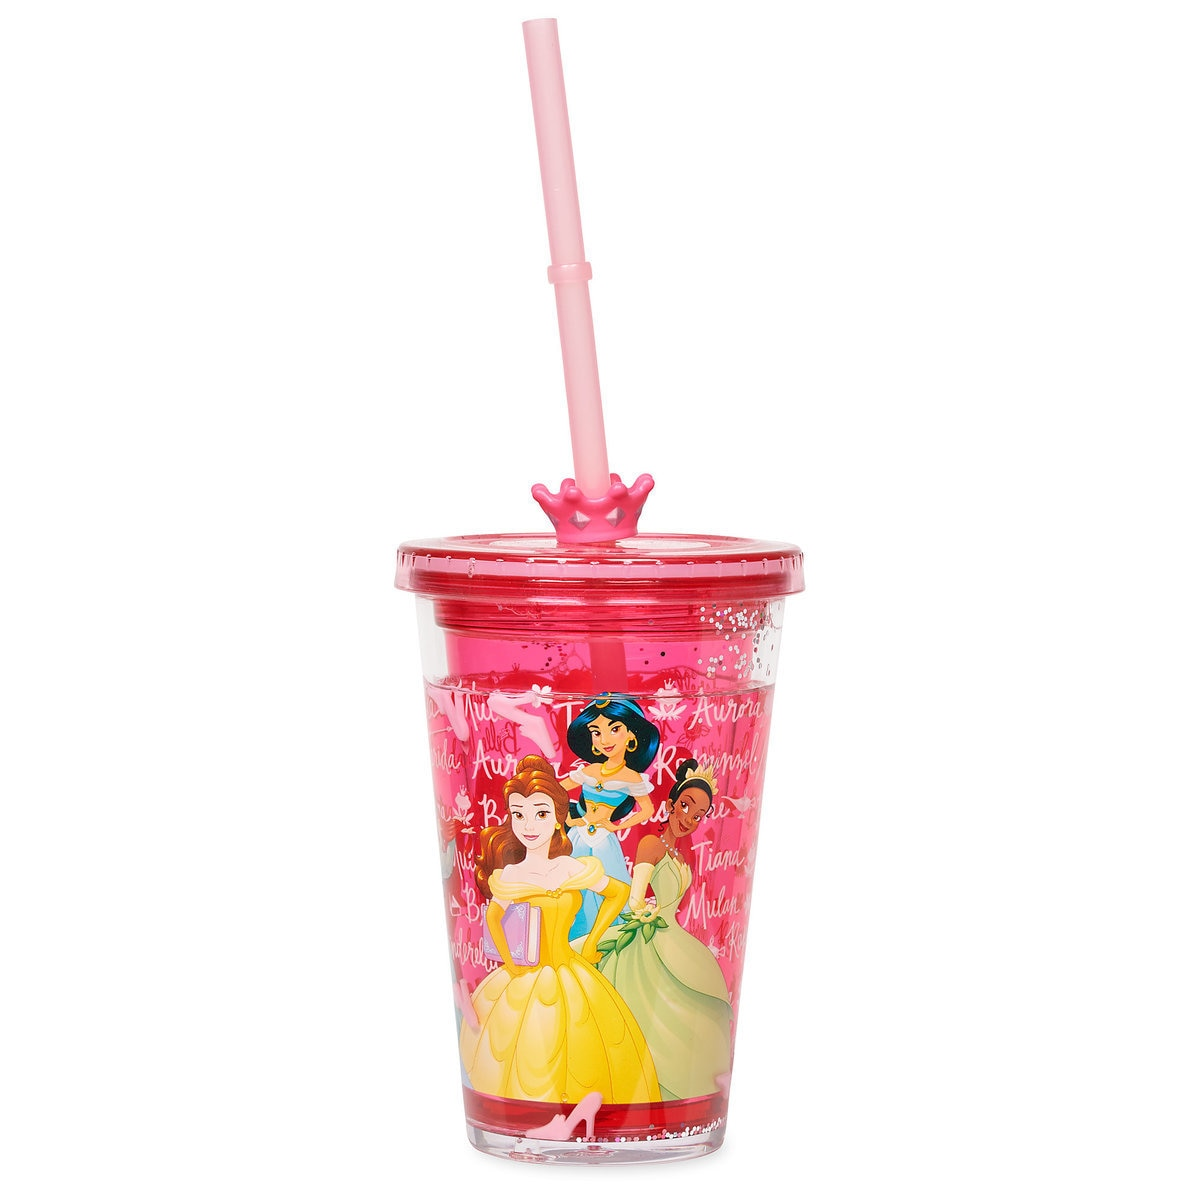 47c2c2edc76 Disney Princess Tumbler with Straw